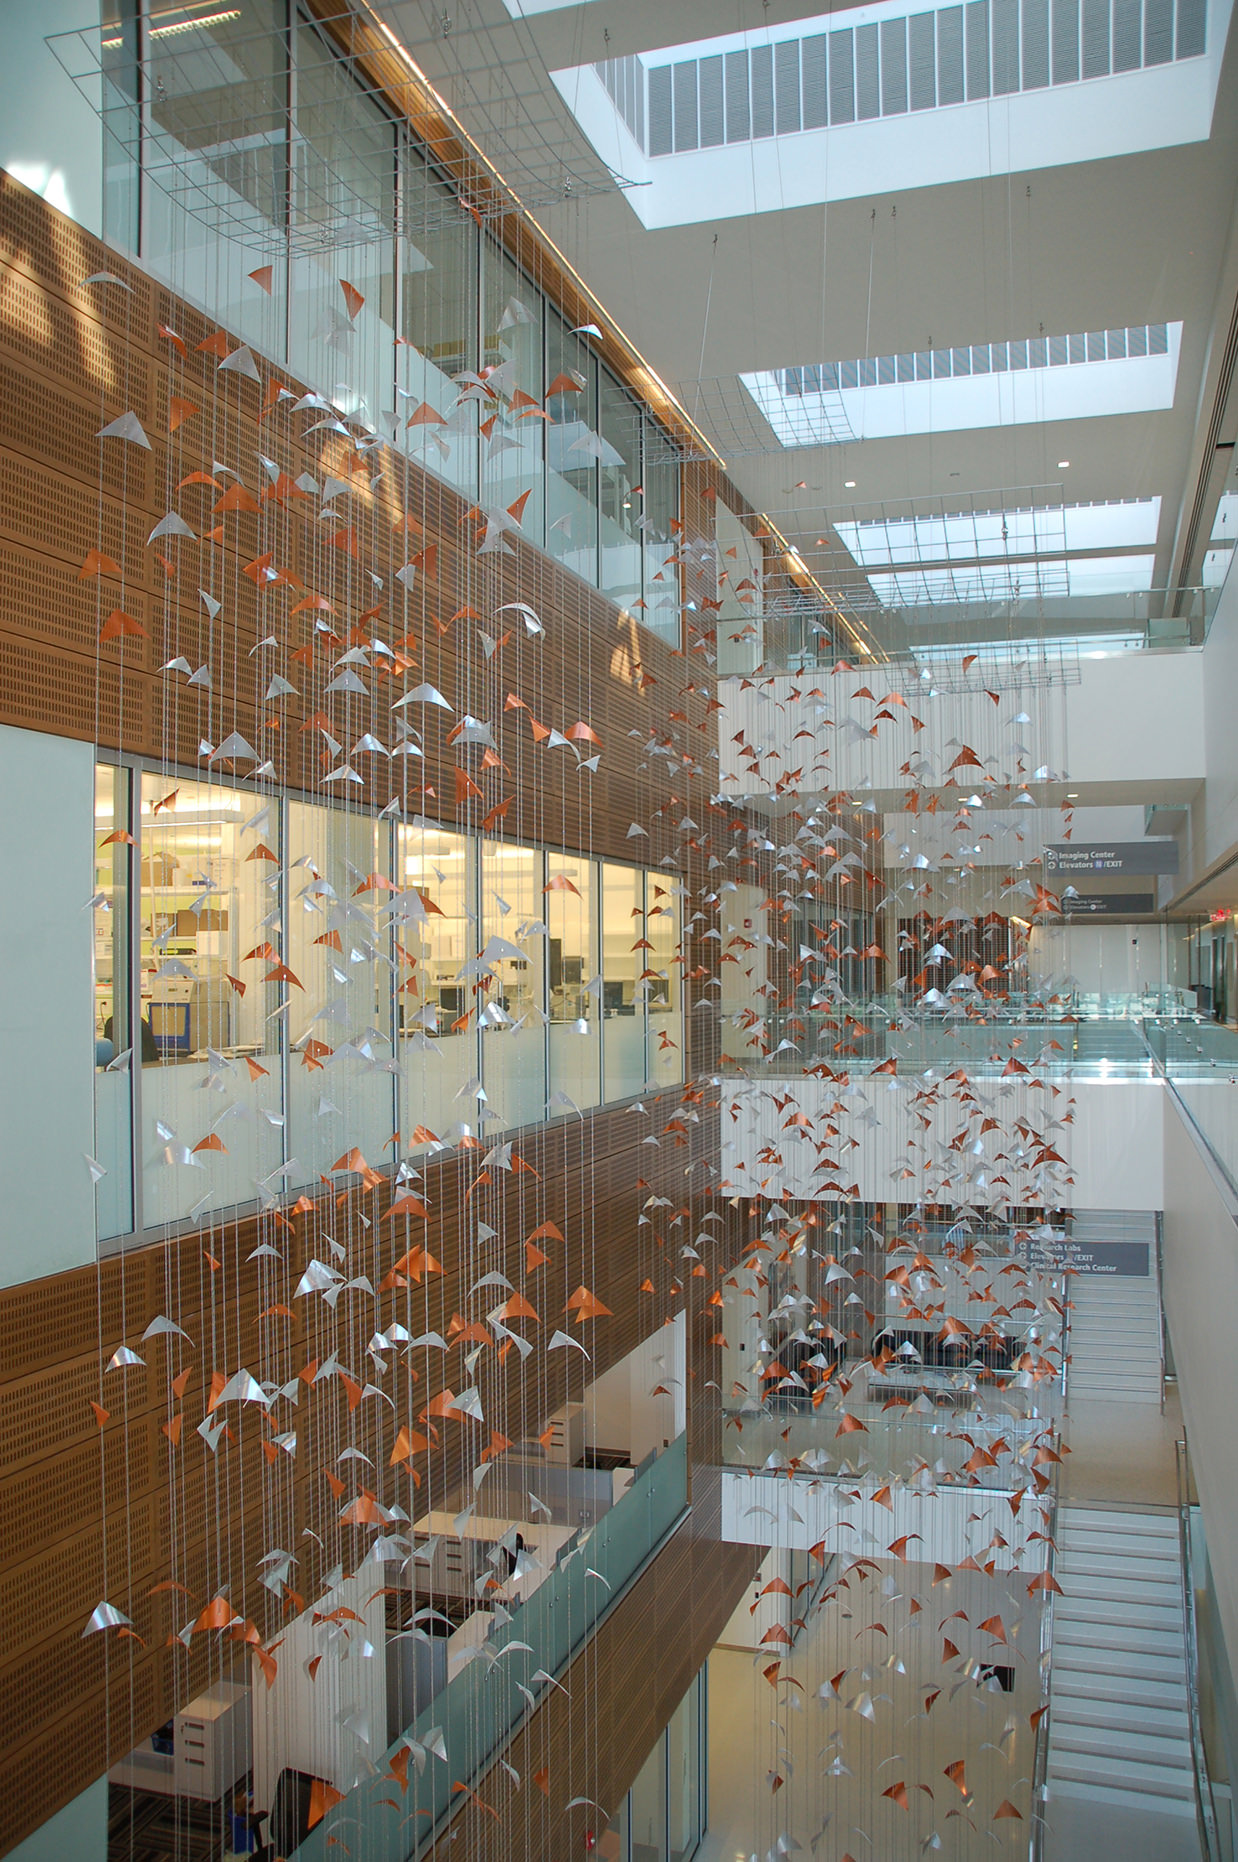 Primordium large-scale suspended sculpture by Talley Fisher at Clinical and Translational Research Center, University of Buffalo